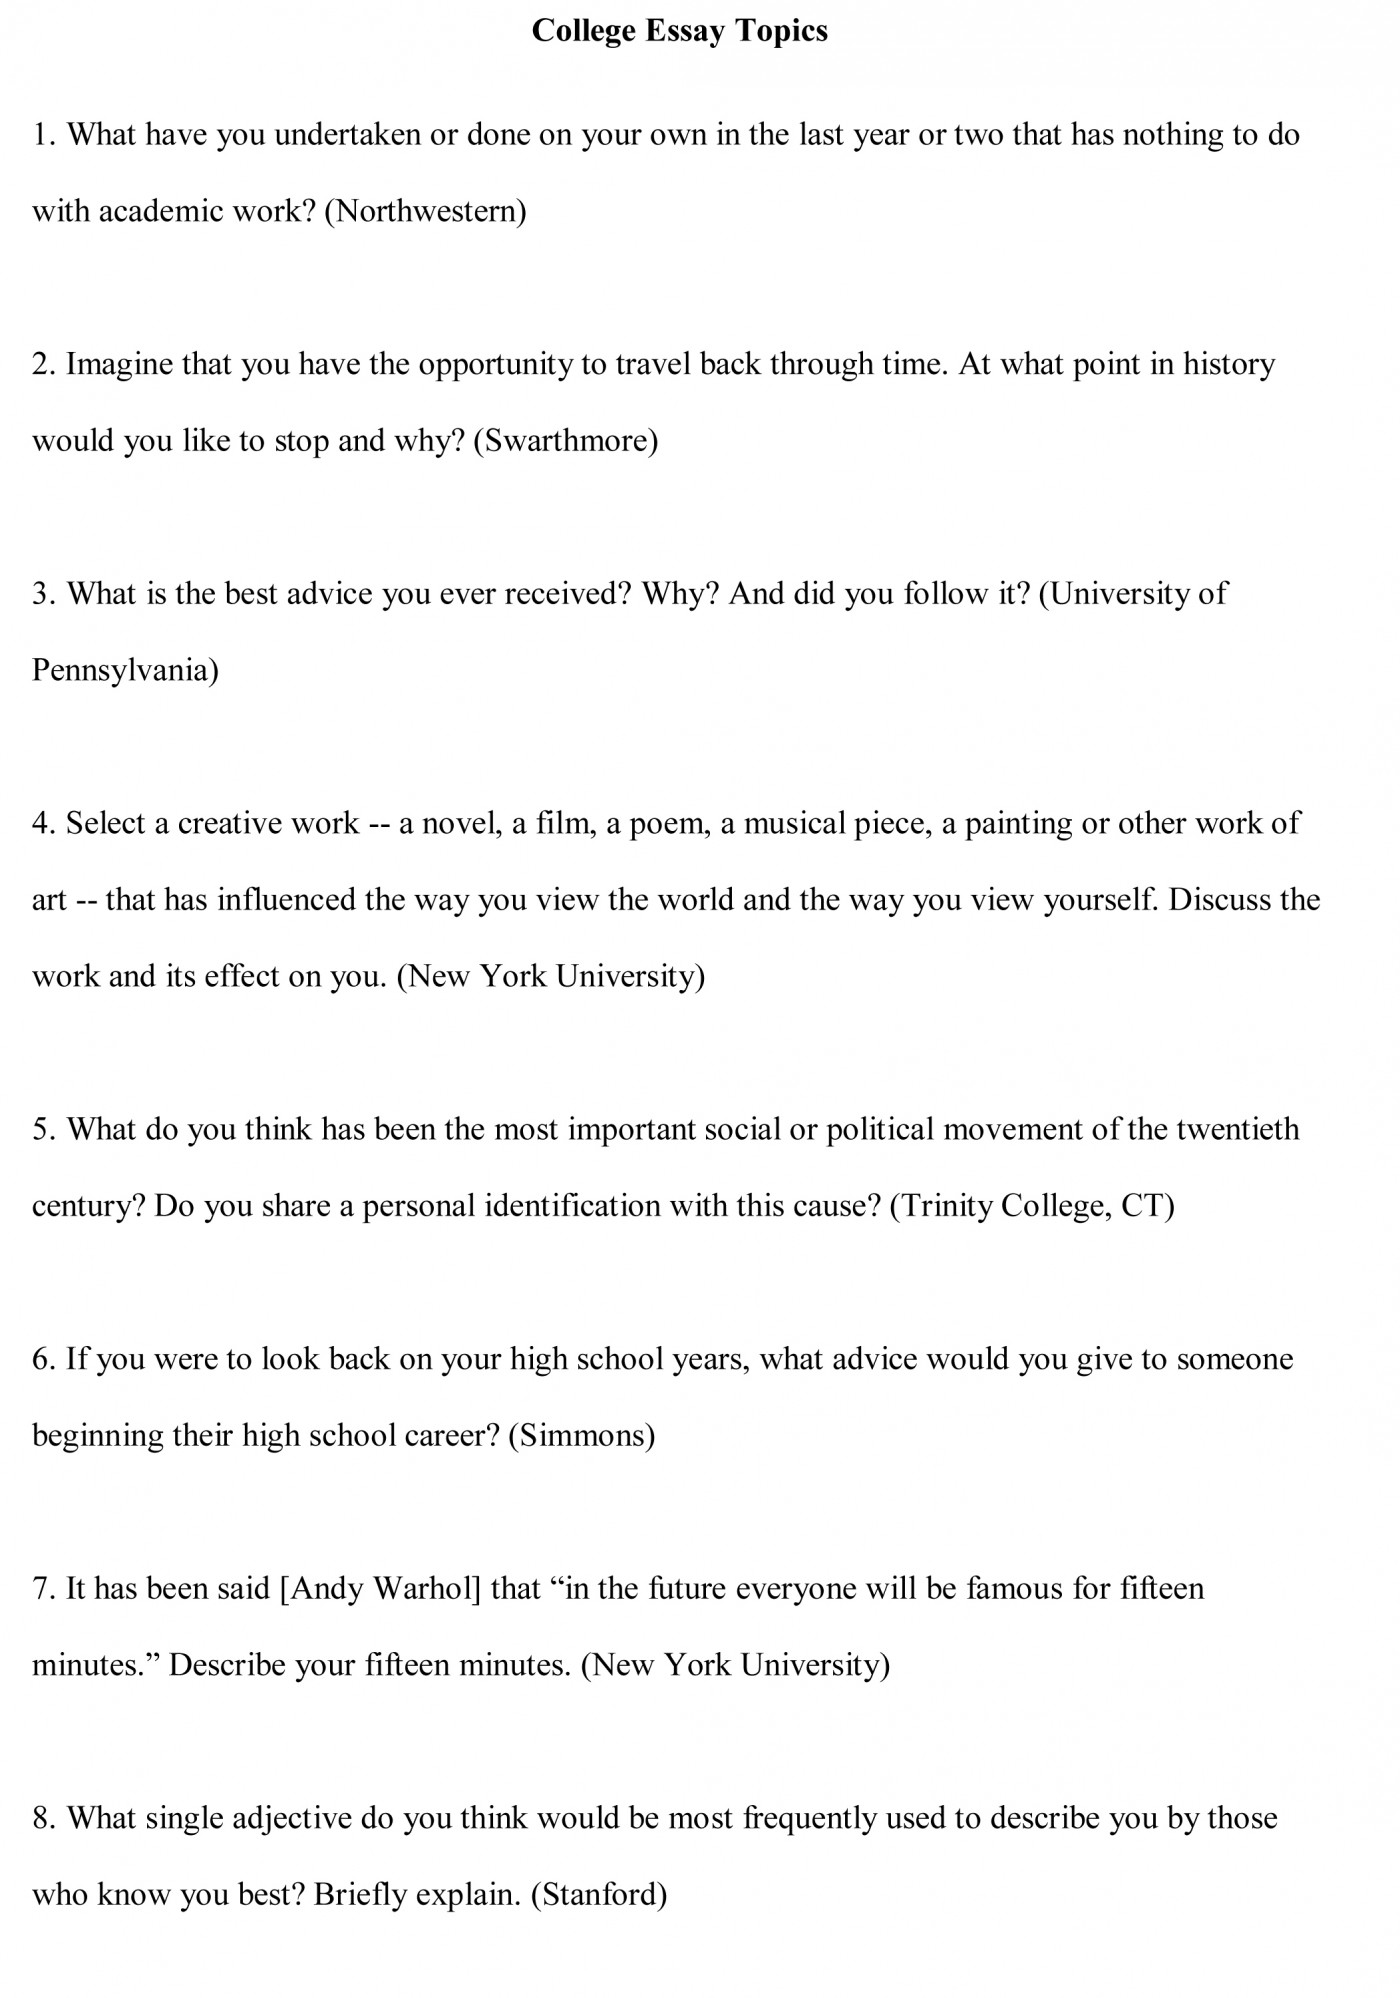 014 Essay Topics College Free Sample1 Archaicawful For High School English Schoolers Grade 8 1400